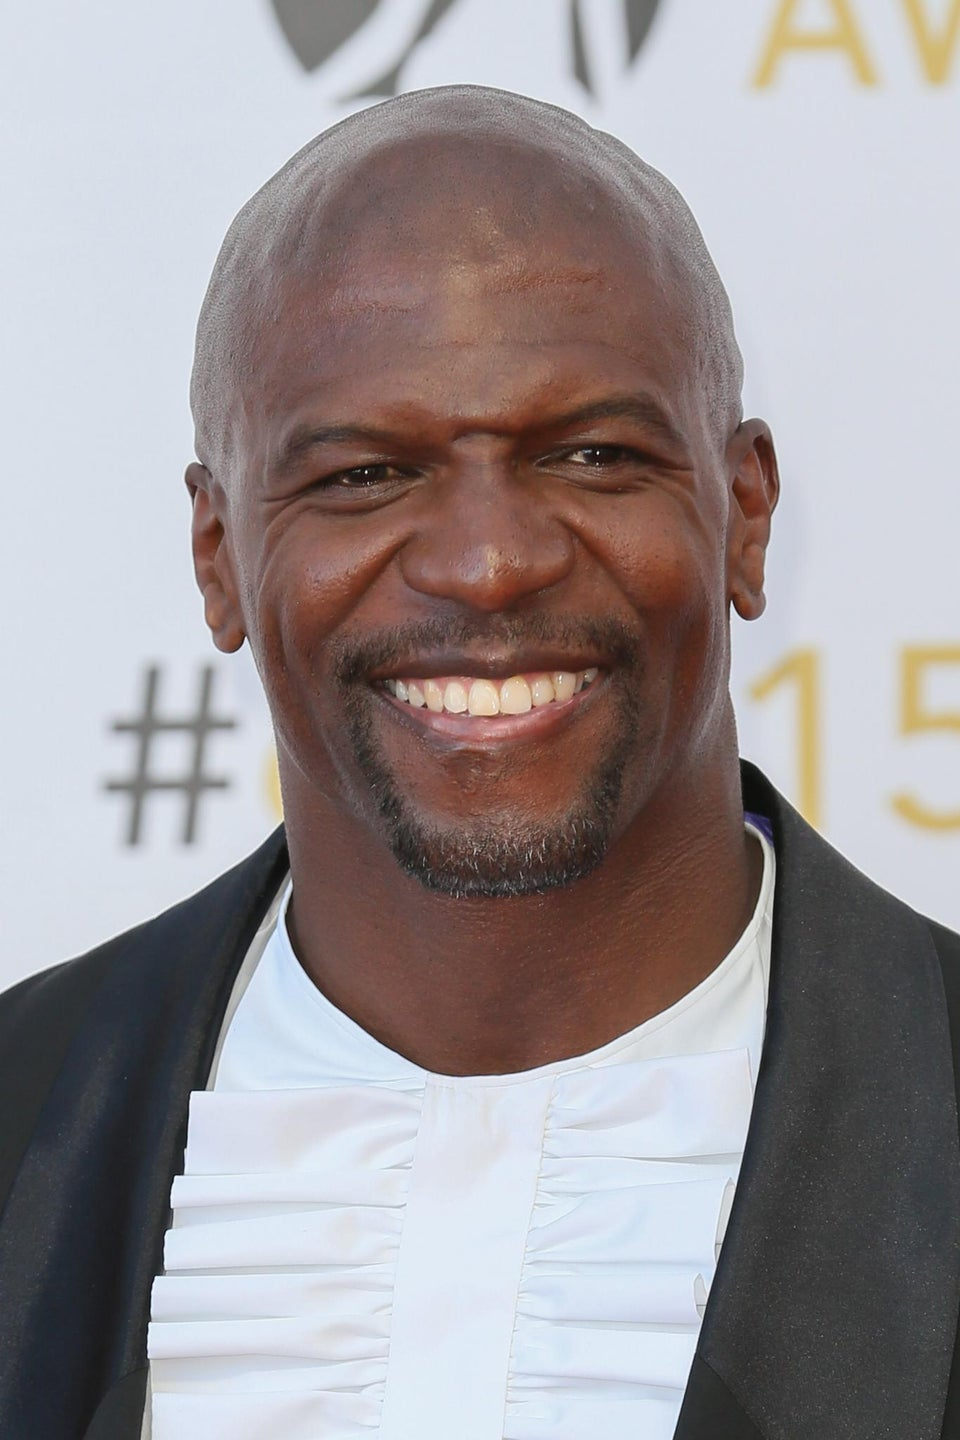 Terry Crews Opens Up About The Porn Addiction That Almost Ruined His Marriage